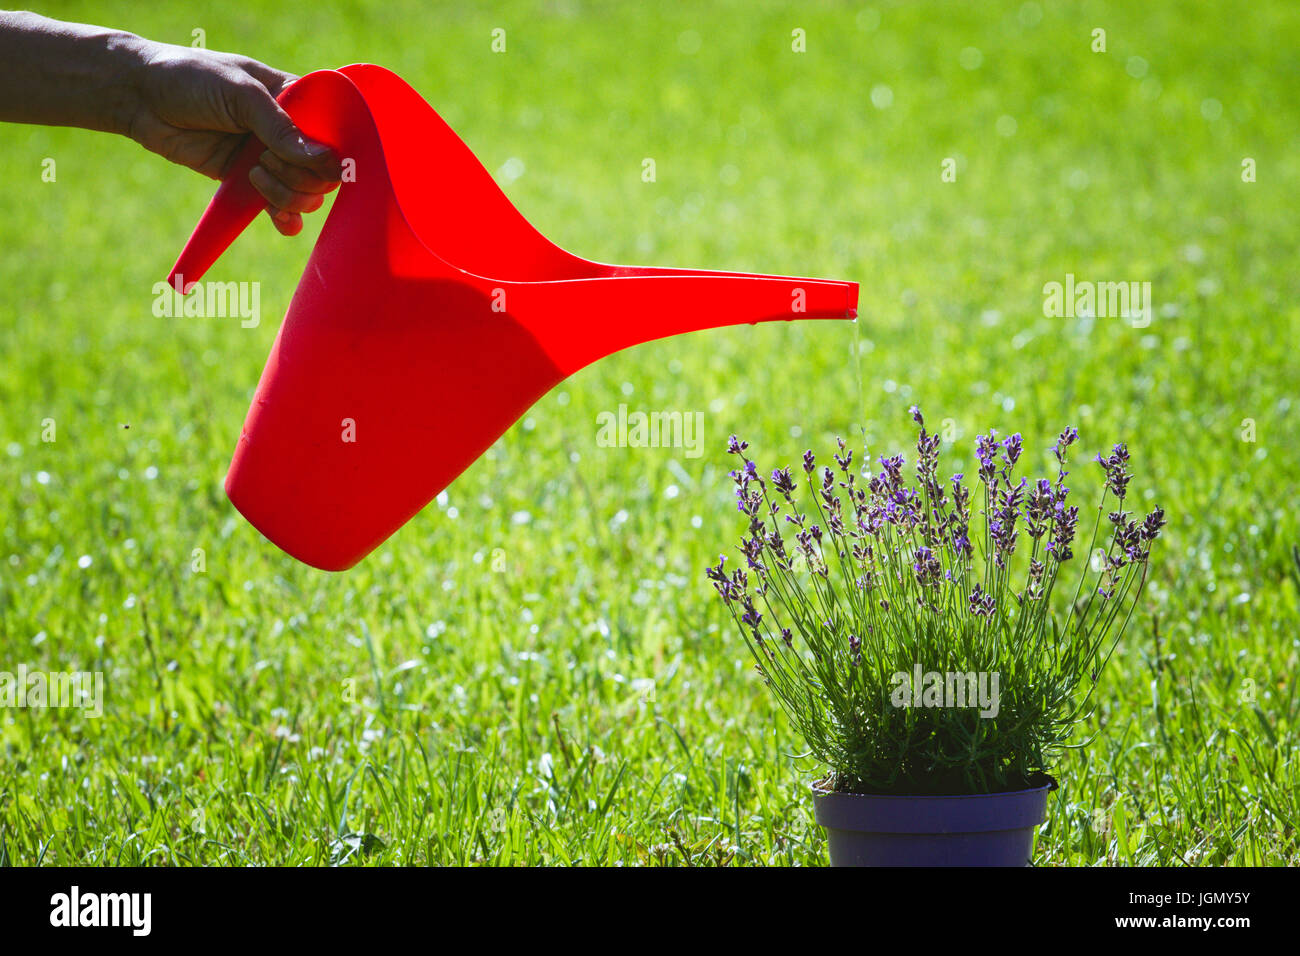 Woman's hand holding red watering can and watering lavender flowerpot. - Stock Image